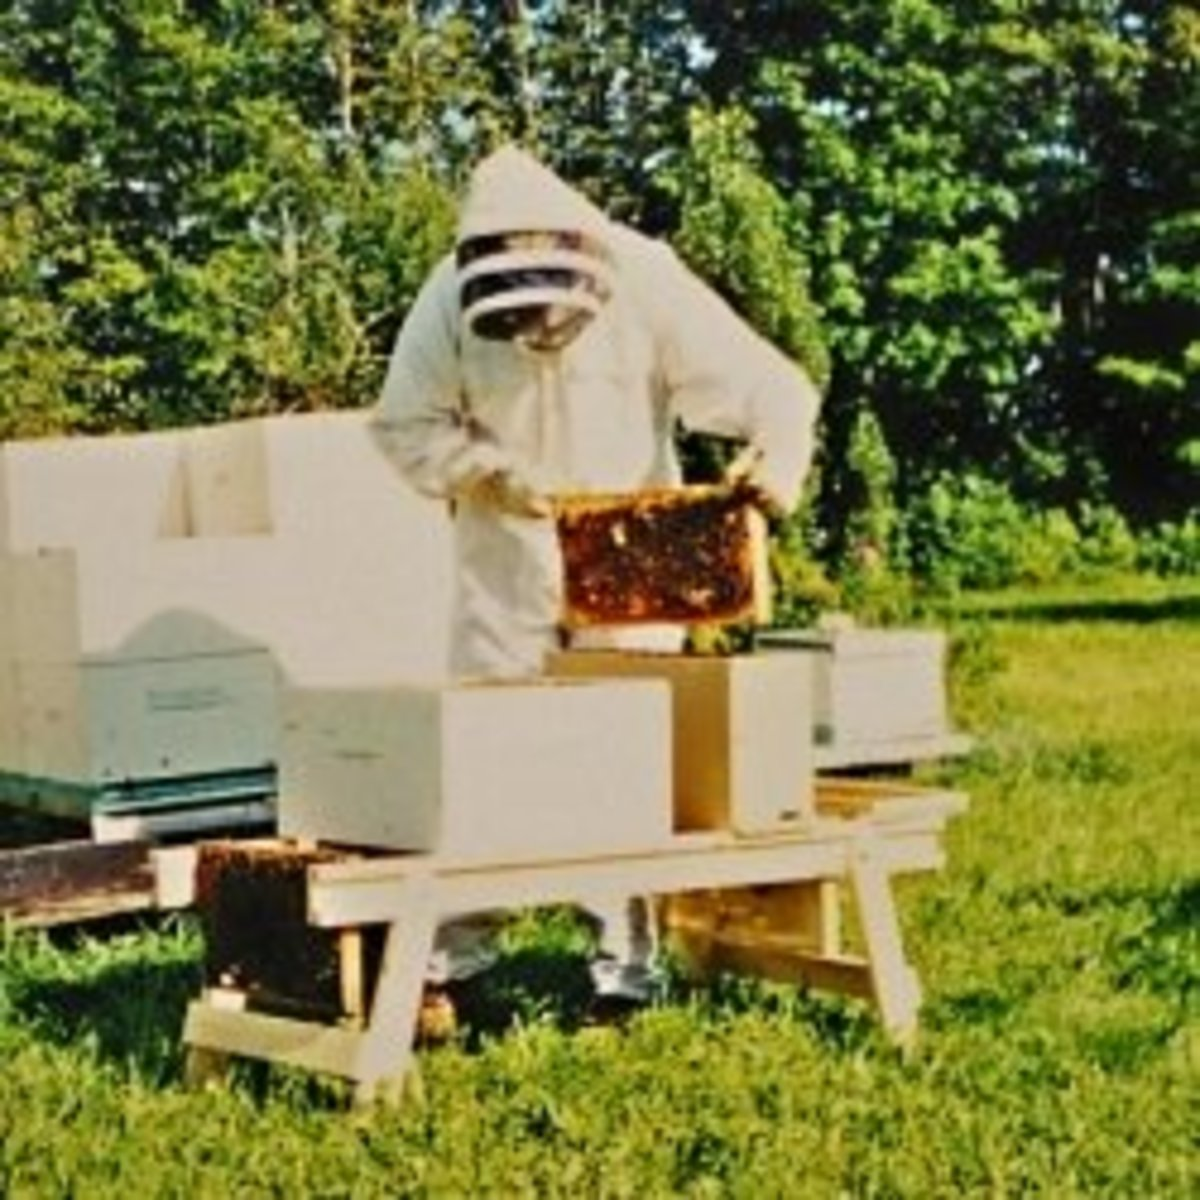 Build a Beekeeper's Work Bench